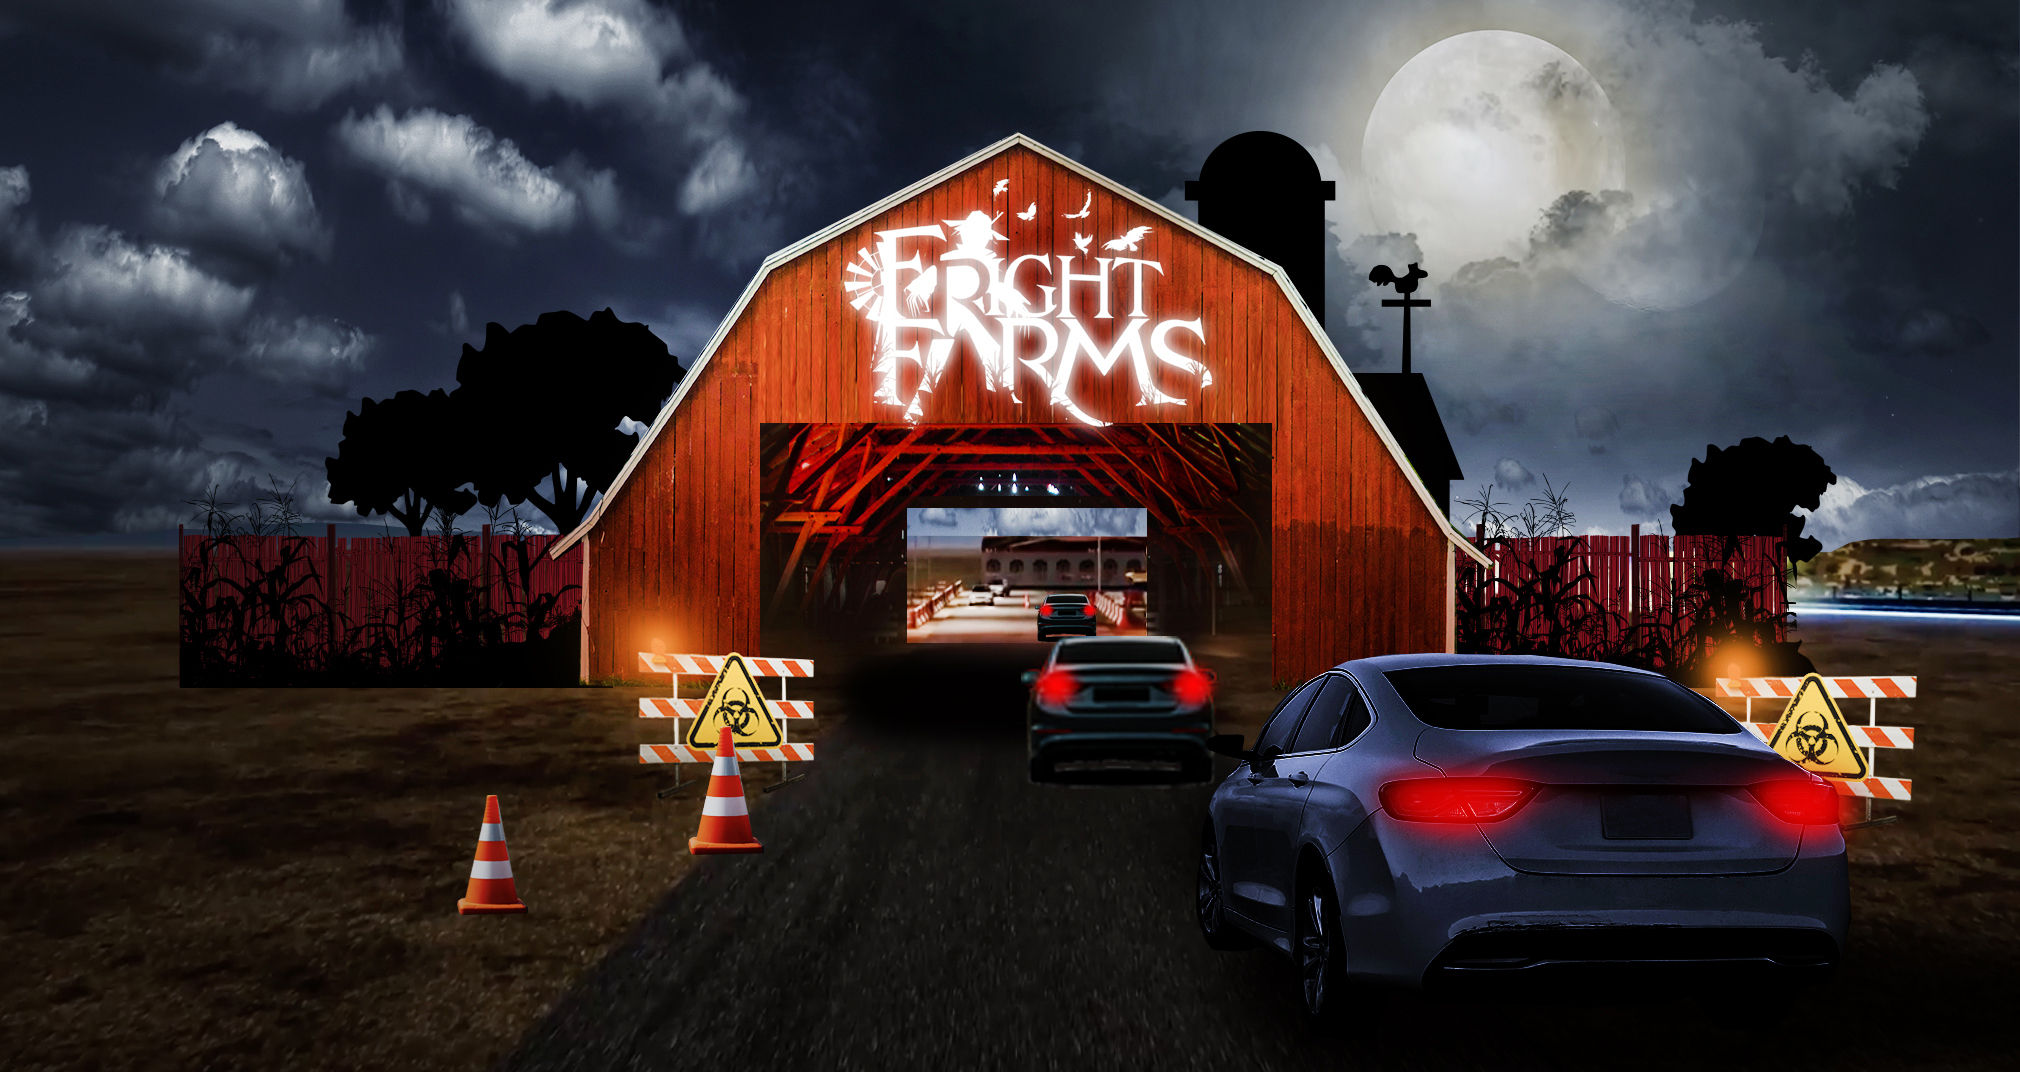 Fright Farms Halloween drive-through